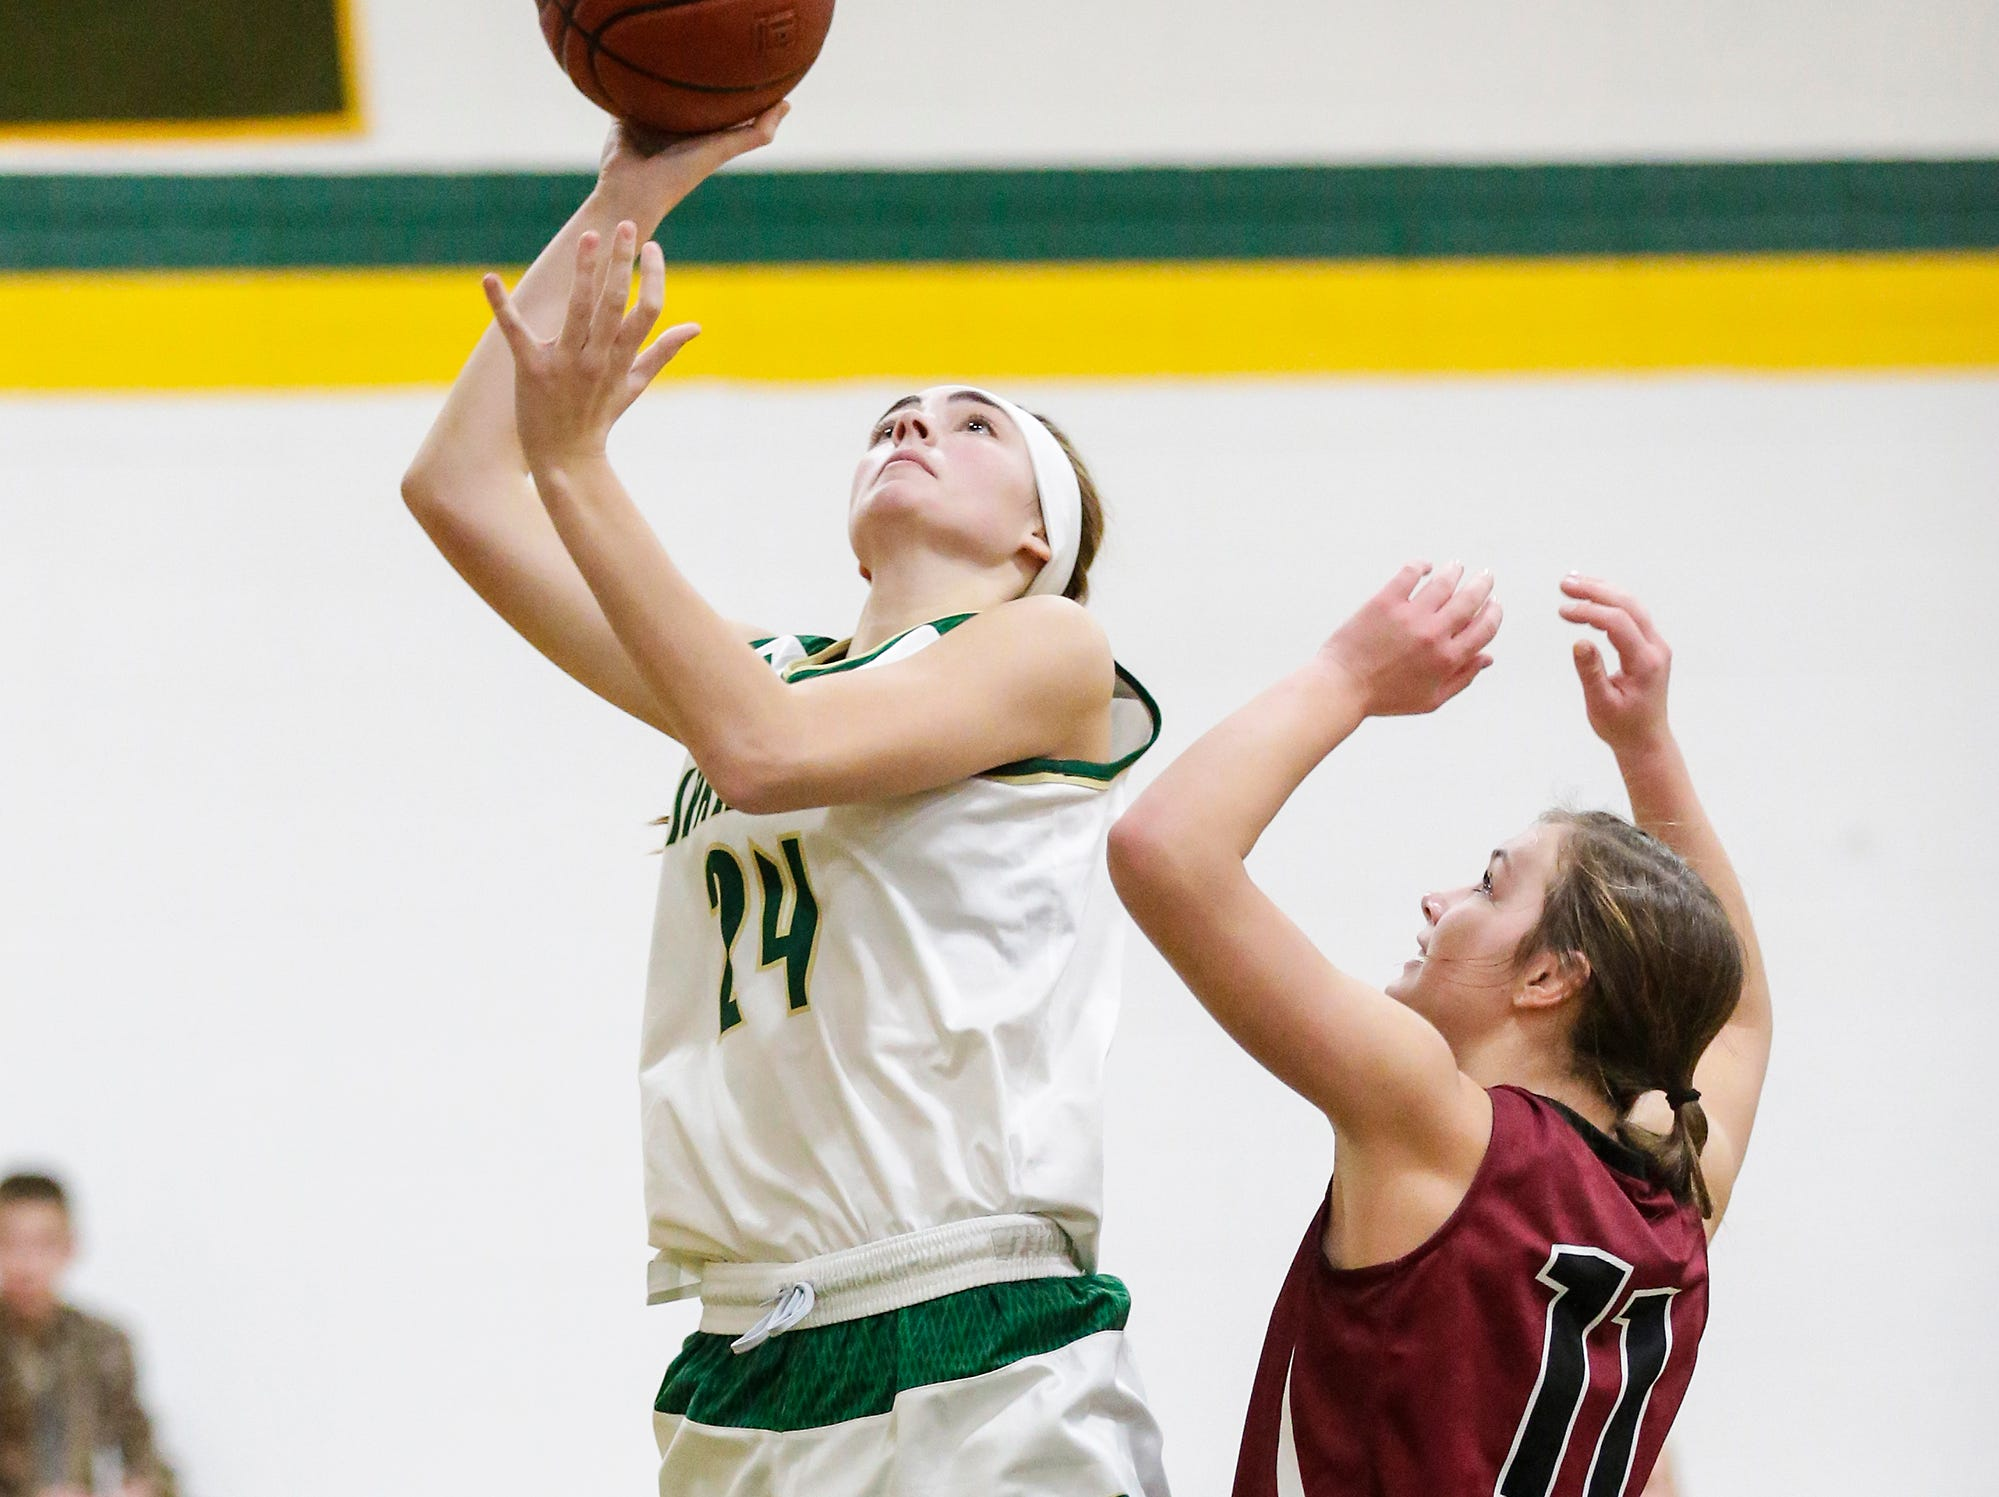 Laconia High School girls basketball's Maci Grade goes up for a basket over Mayville High School's Whitney Liegl during their game Friday, November 30, 2018 in Rosendale. Doug Raflik/USA TODAY NETWORK-Wisconsin